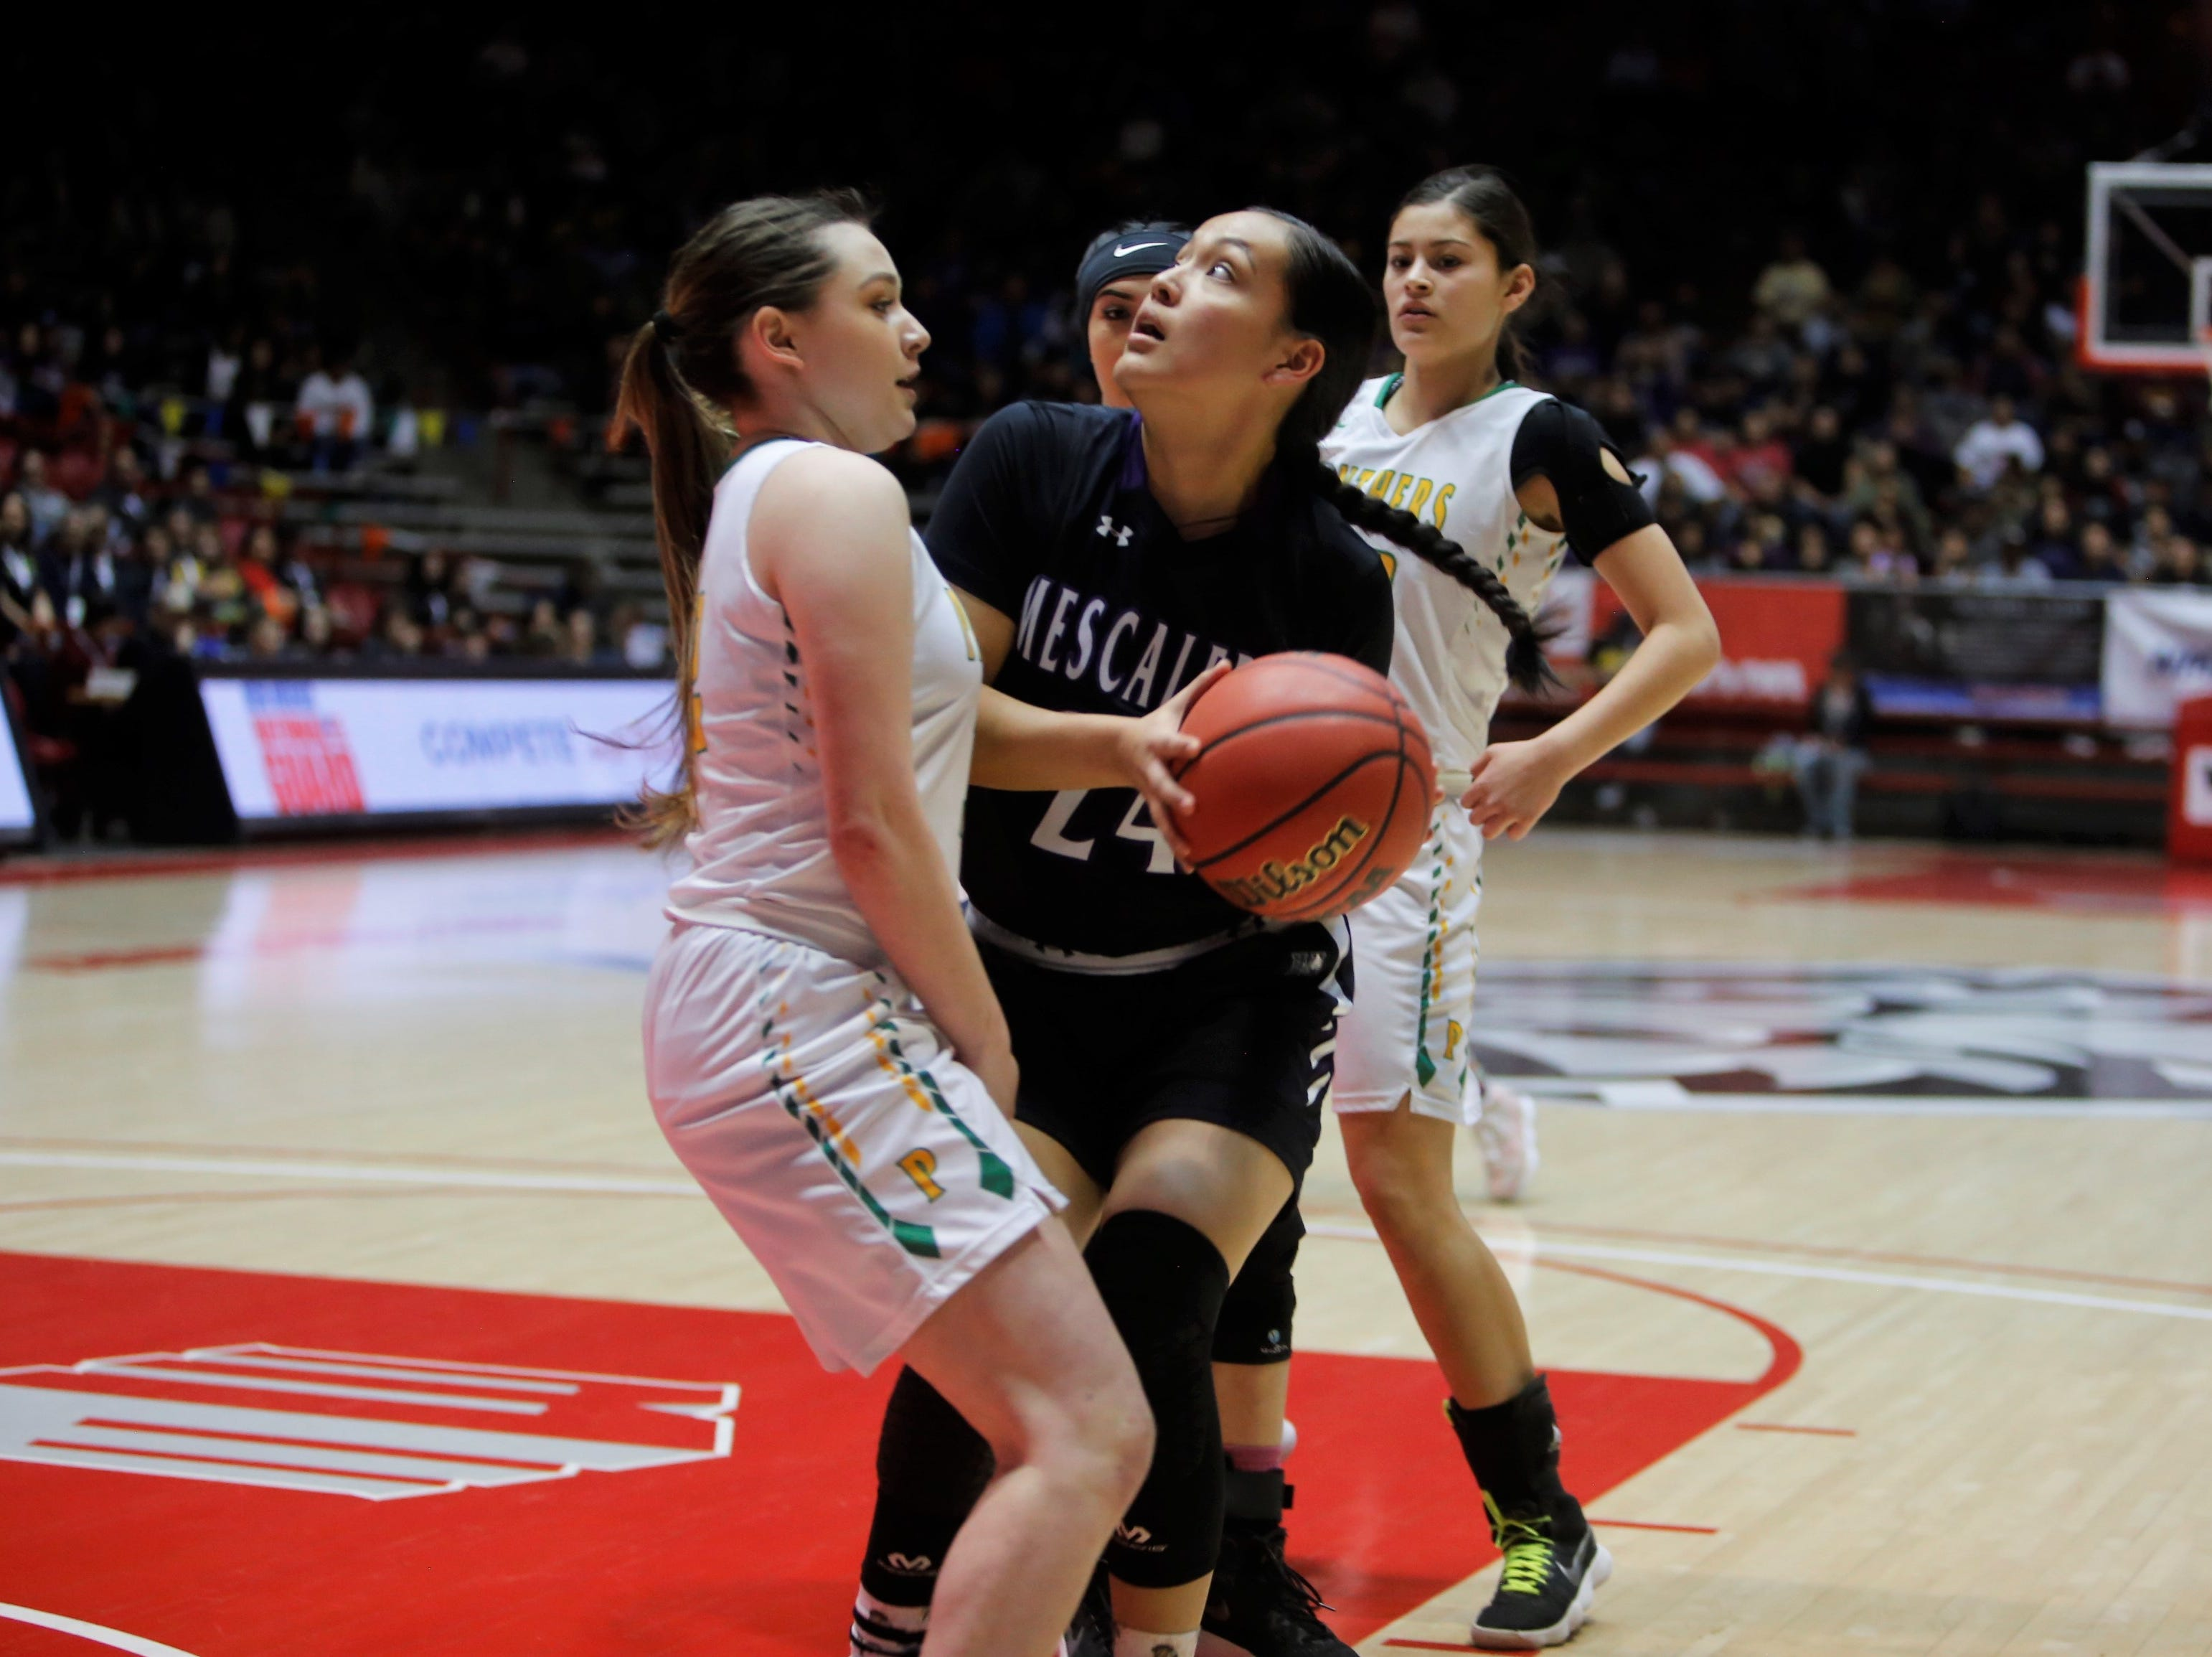 Mescalero Apache's Samantha Kazhe makes contact with Pecos's Cassaundra Muller going to the basket during Friday's 2A state championship game at Dreamstyle Arena in Albuquerque.